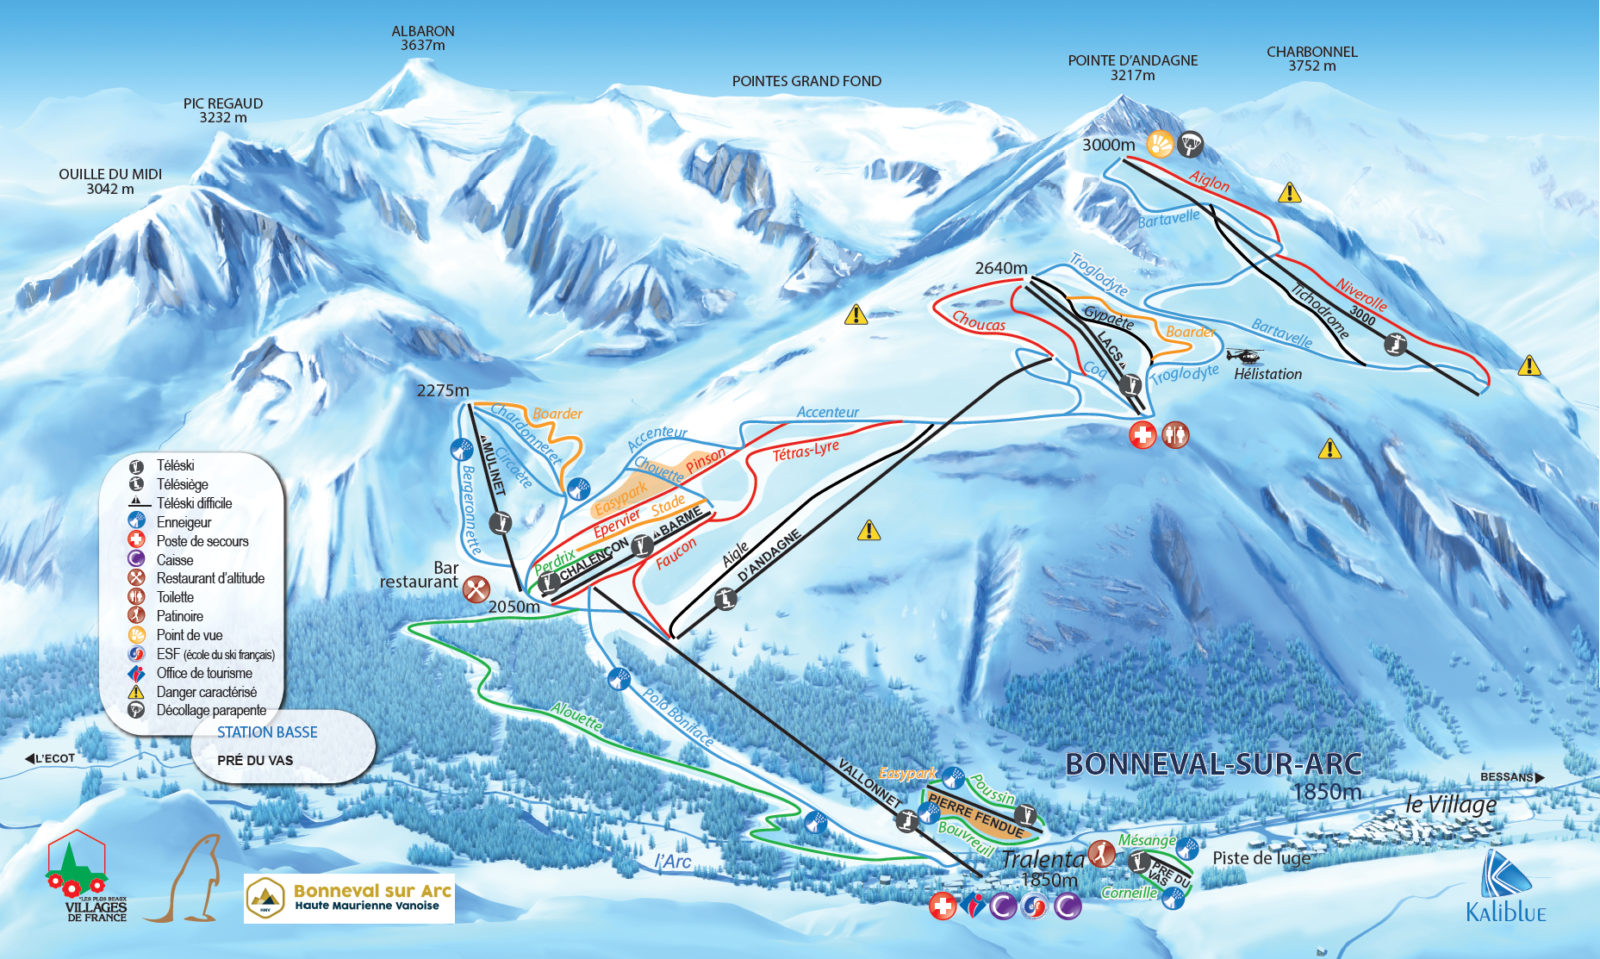 A map of ski lifts and ski slopes